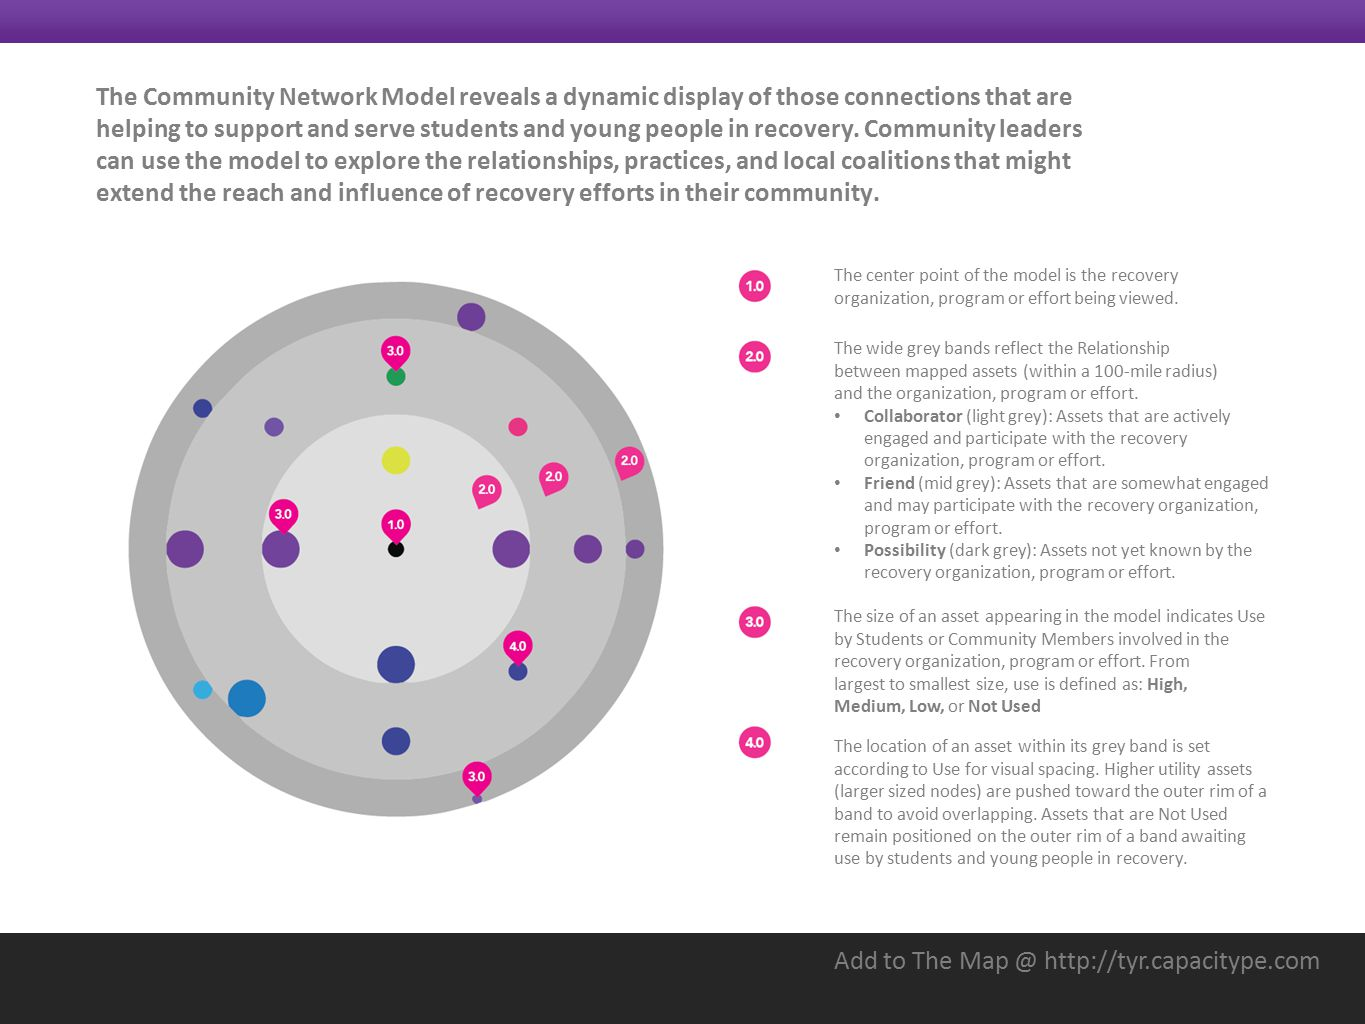 Add to The Map @ http://tyr.capacitype.com The Community Network Model reveals a dynamic display of those connections that are helping to support and serve students and young people in recovery.